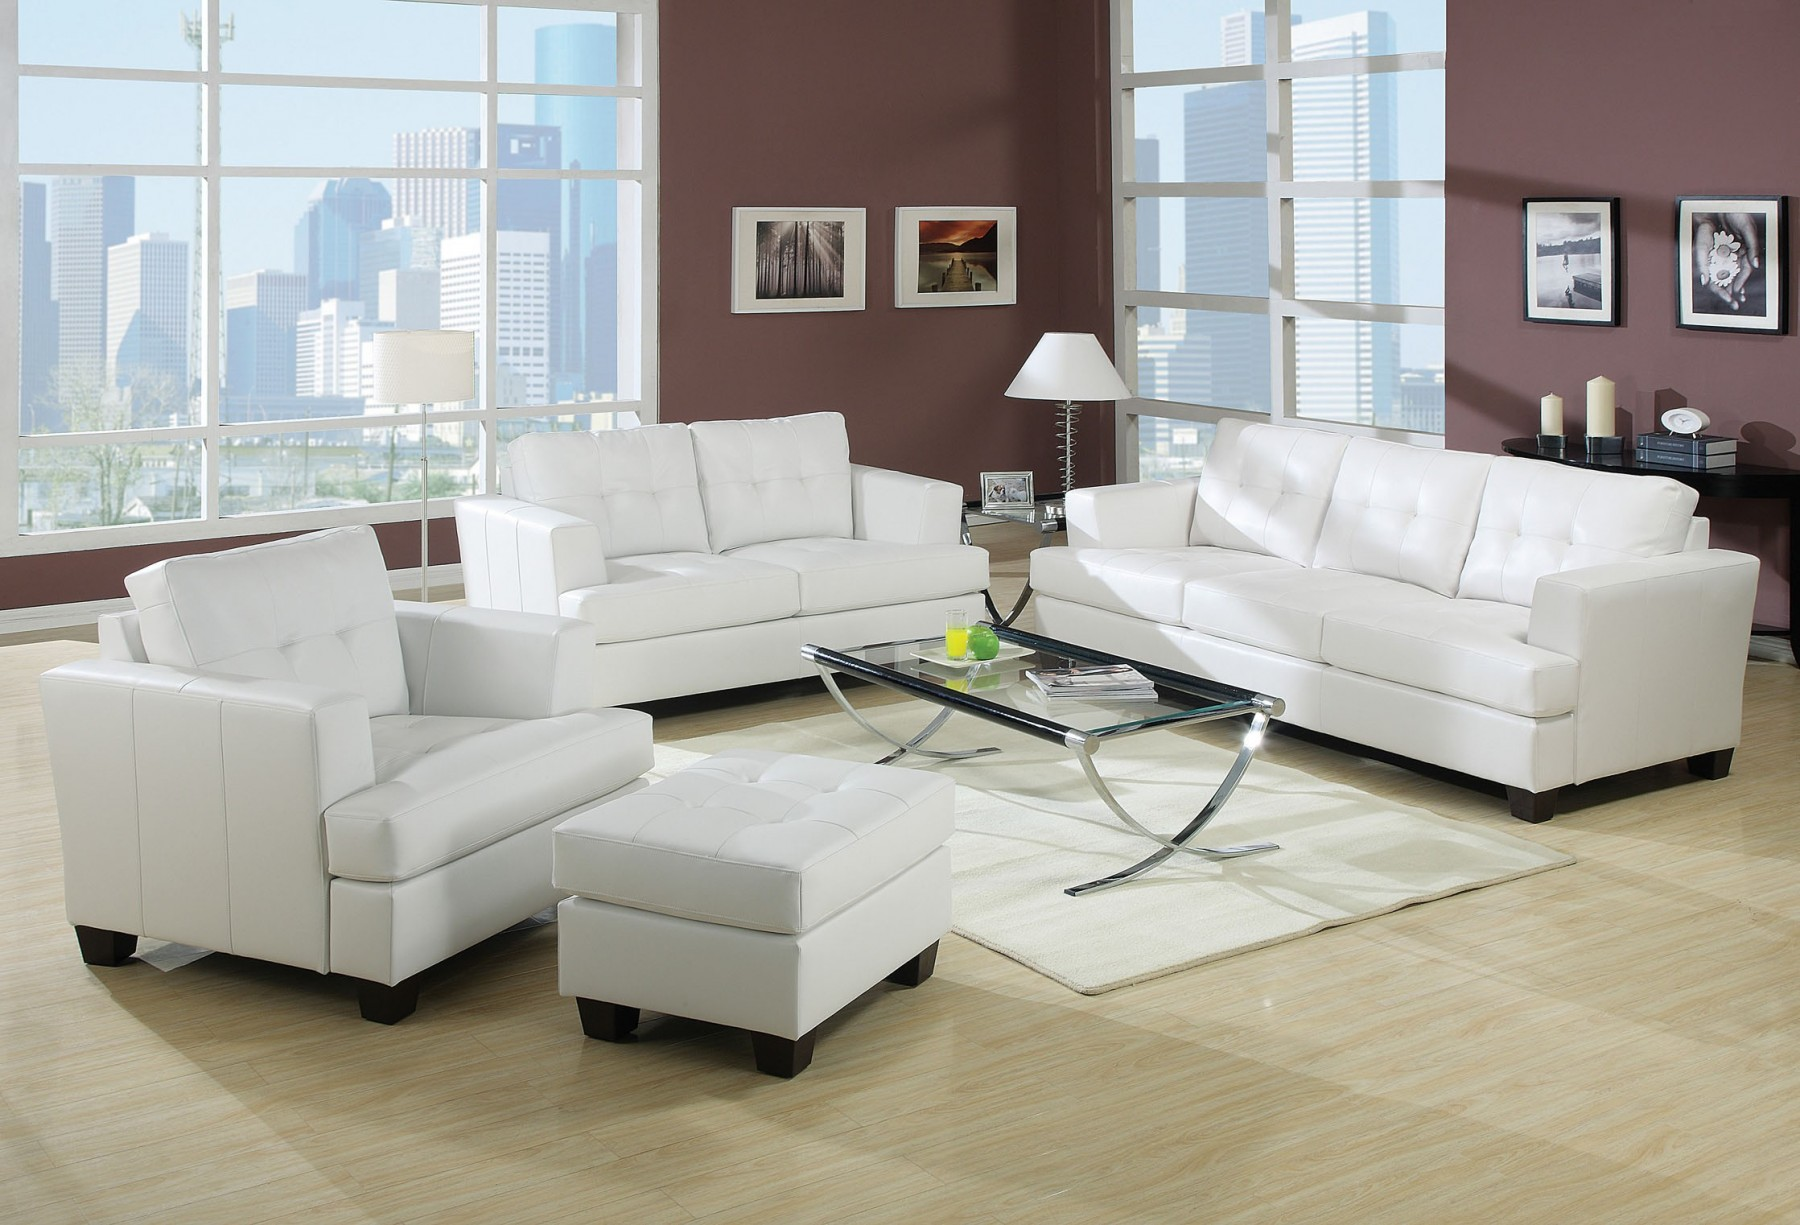 Acme Platinum White Sofa Set Sofa Loveseat Chair Contemporary White Bonded  Leather Tufted Back Couch Plush